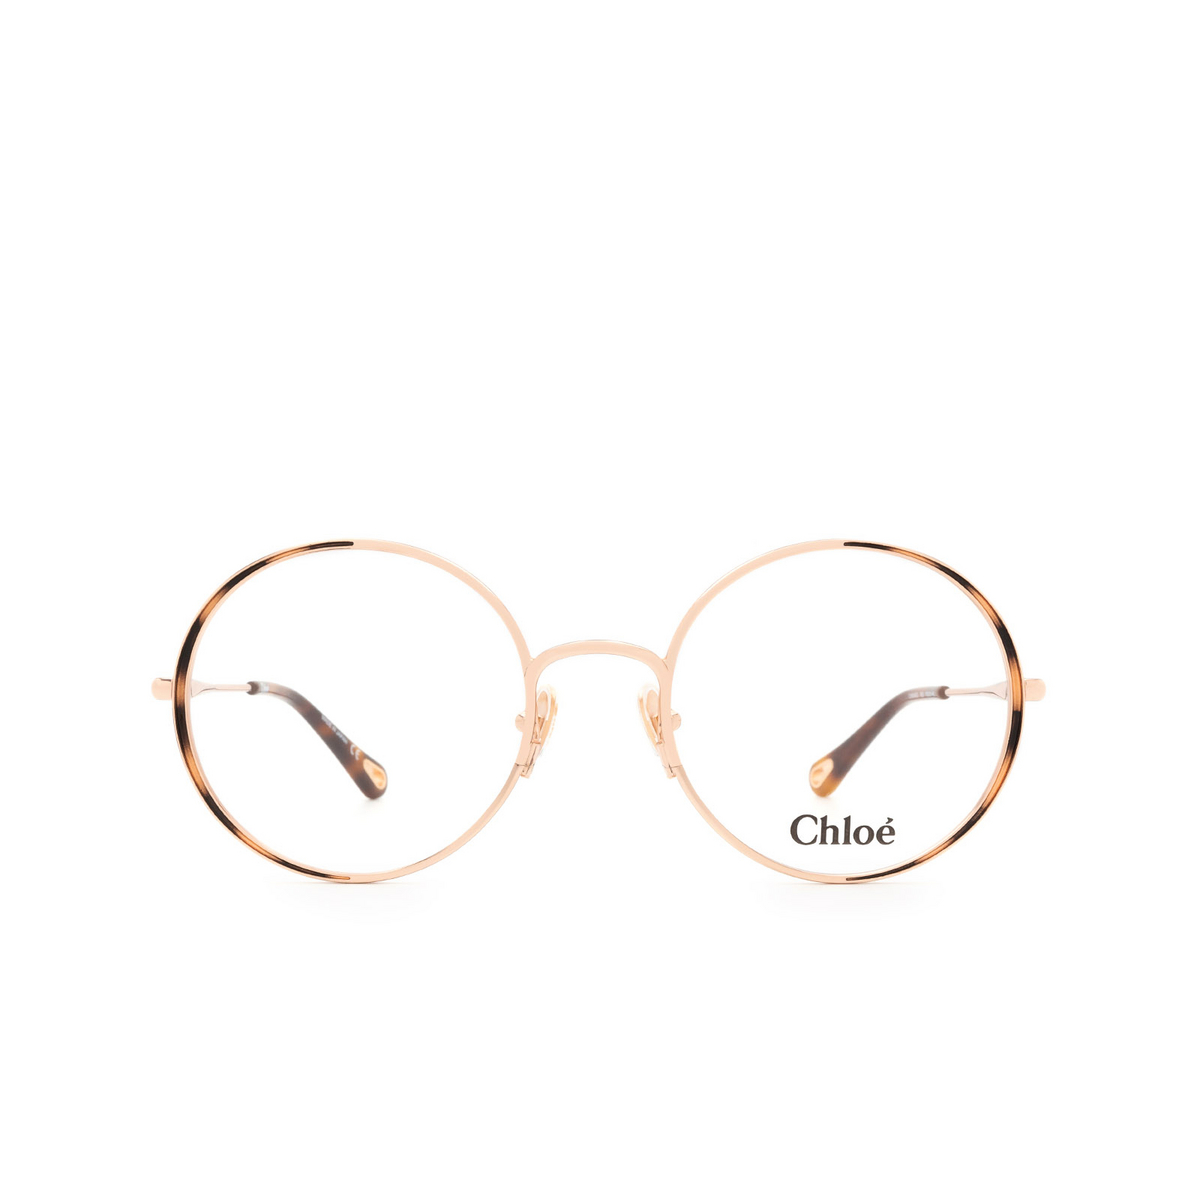 Chloé® Round Eyeglasses: CH0040O color Rose Gold & Havana 002 - front view.